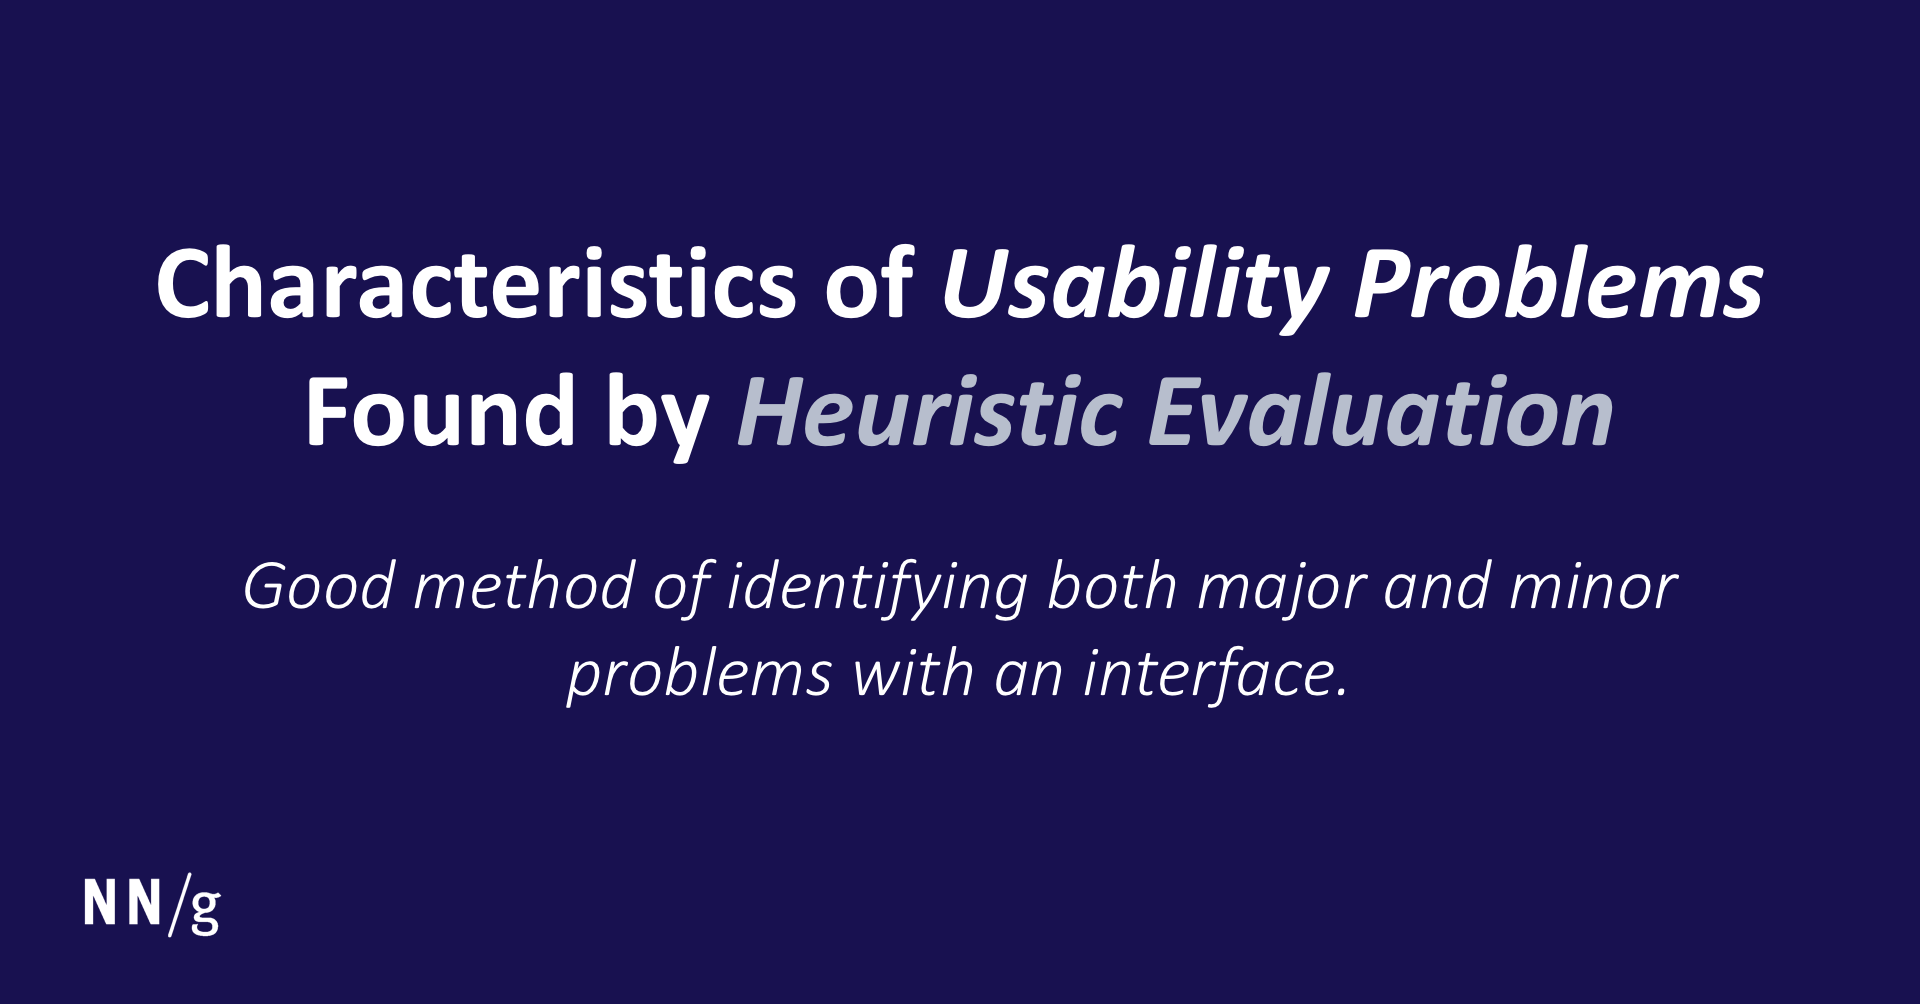 heuristic evaluation definition